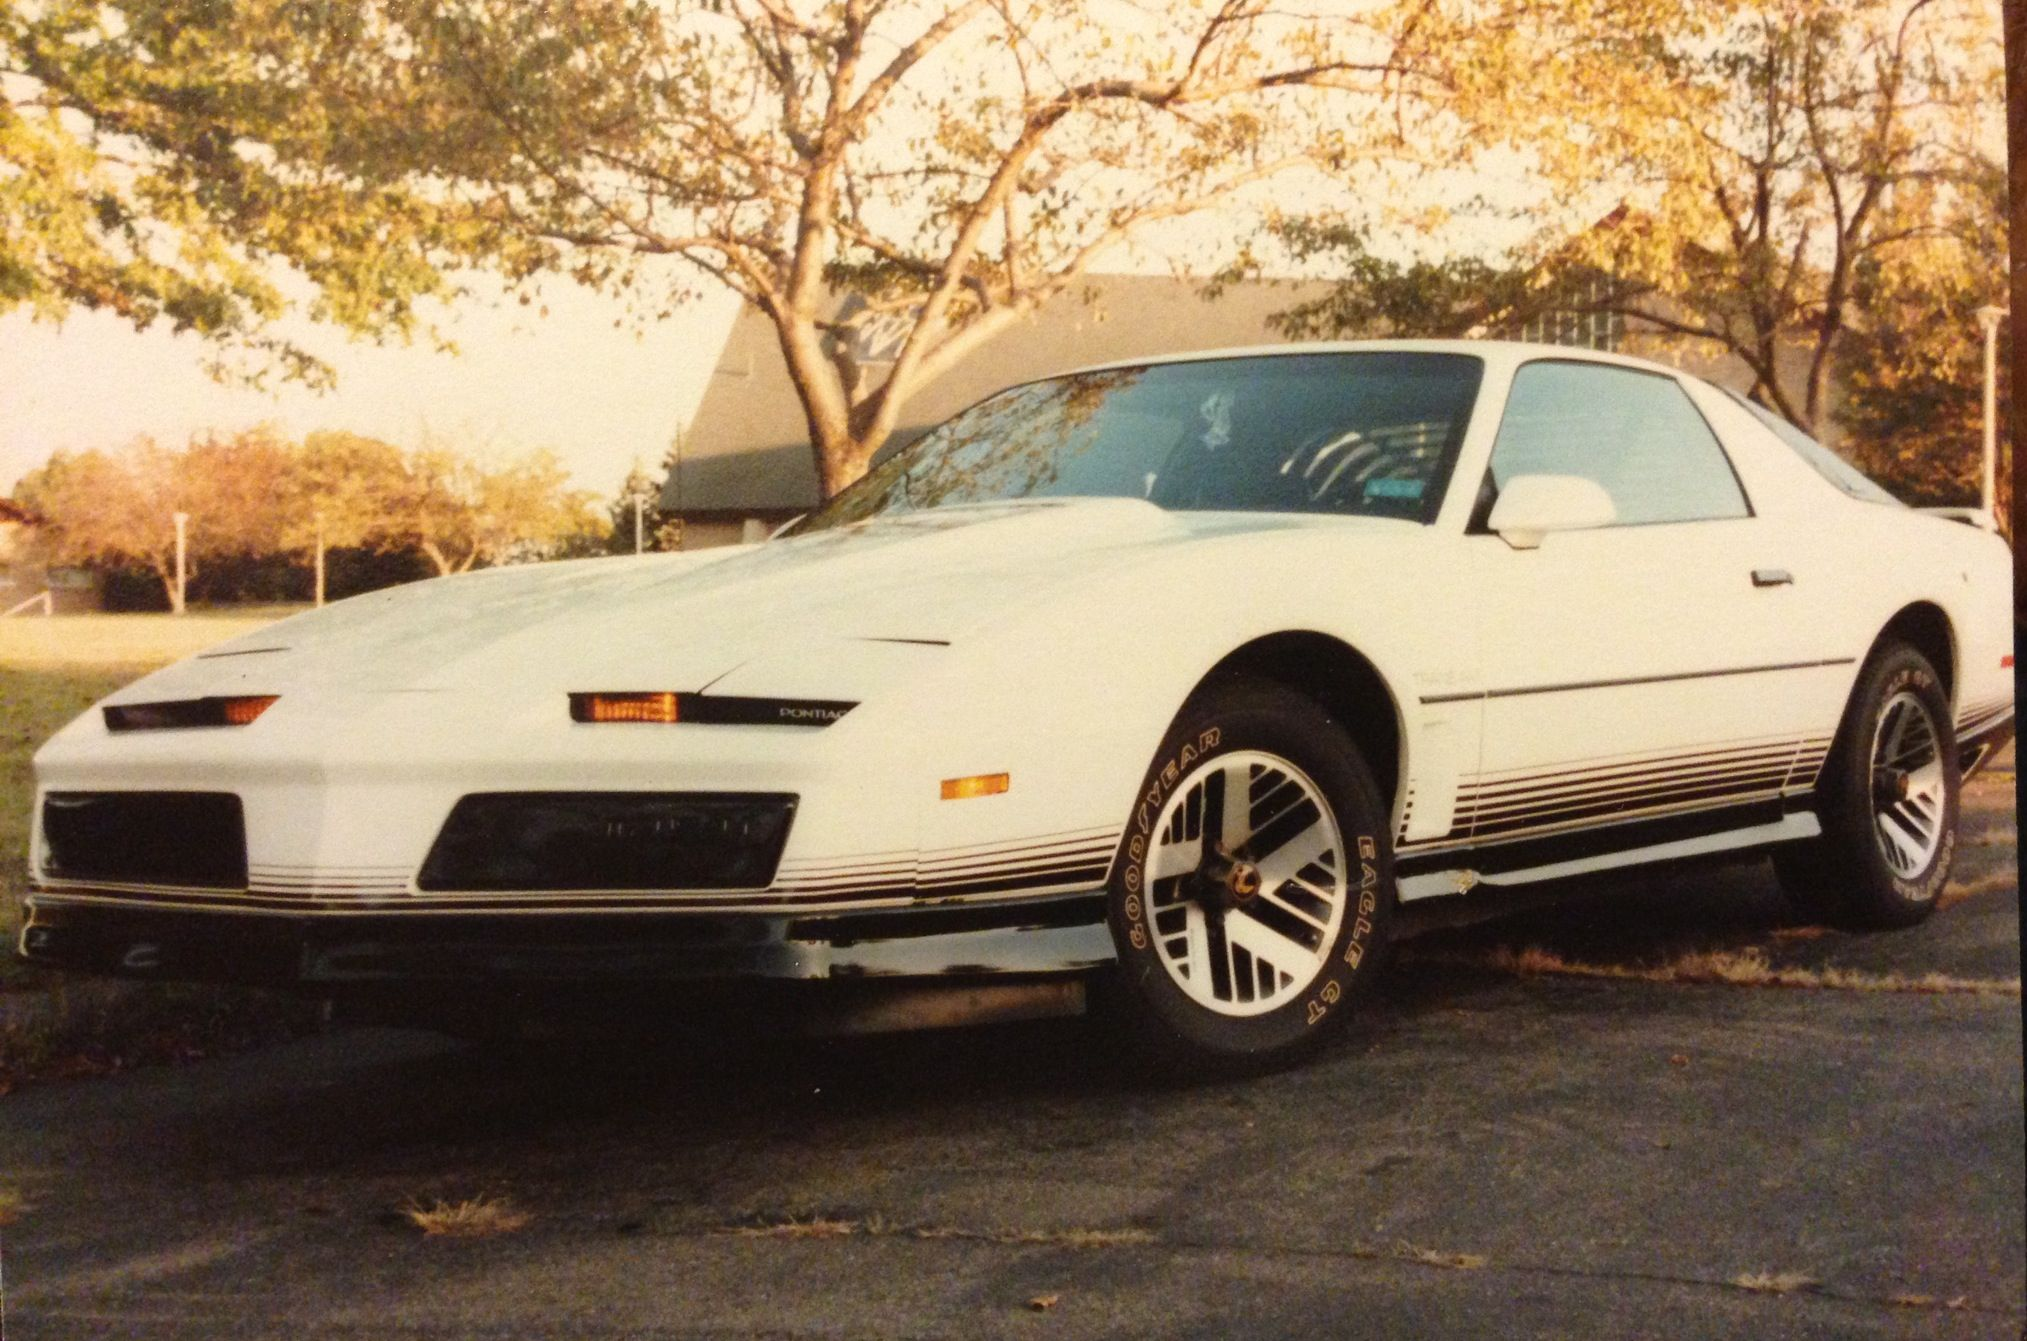 One of my other most favorite cars I've owned! 1984 Pontiac Firebird Trans Am. I looked soooo cool driving around in this bad boy wearing my black leather driving gloves, collar flipped up, cheesy Tom Selleck mustache! How did the ladies resist me?!?! LOL!